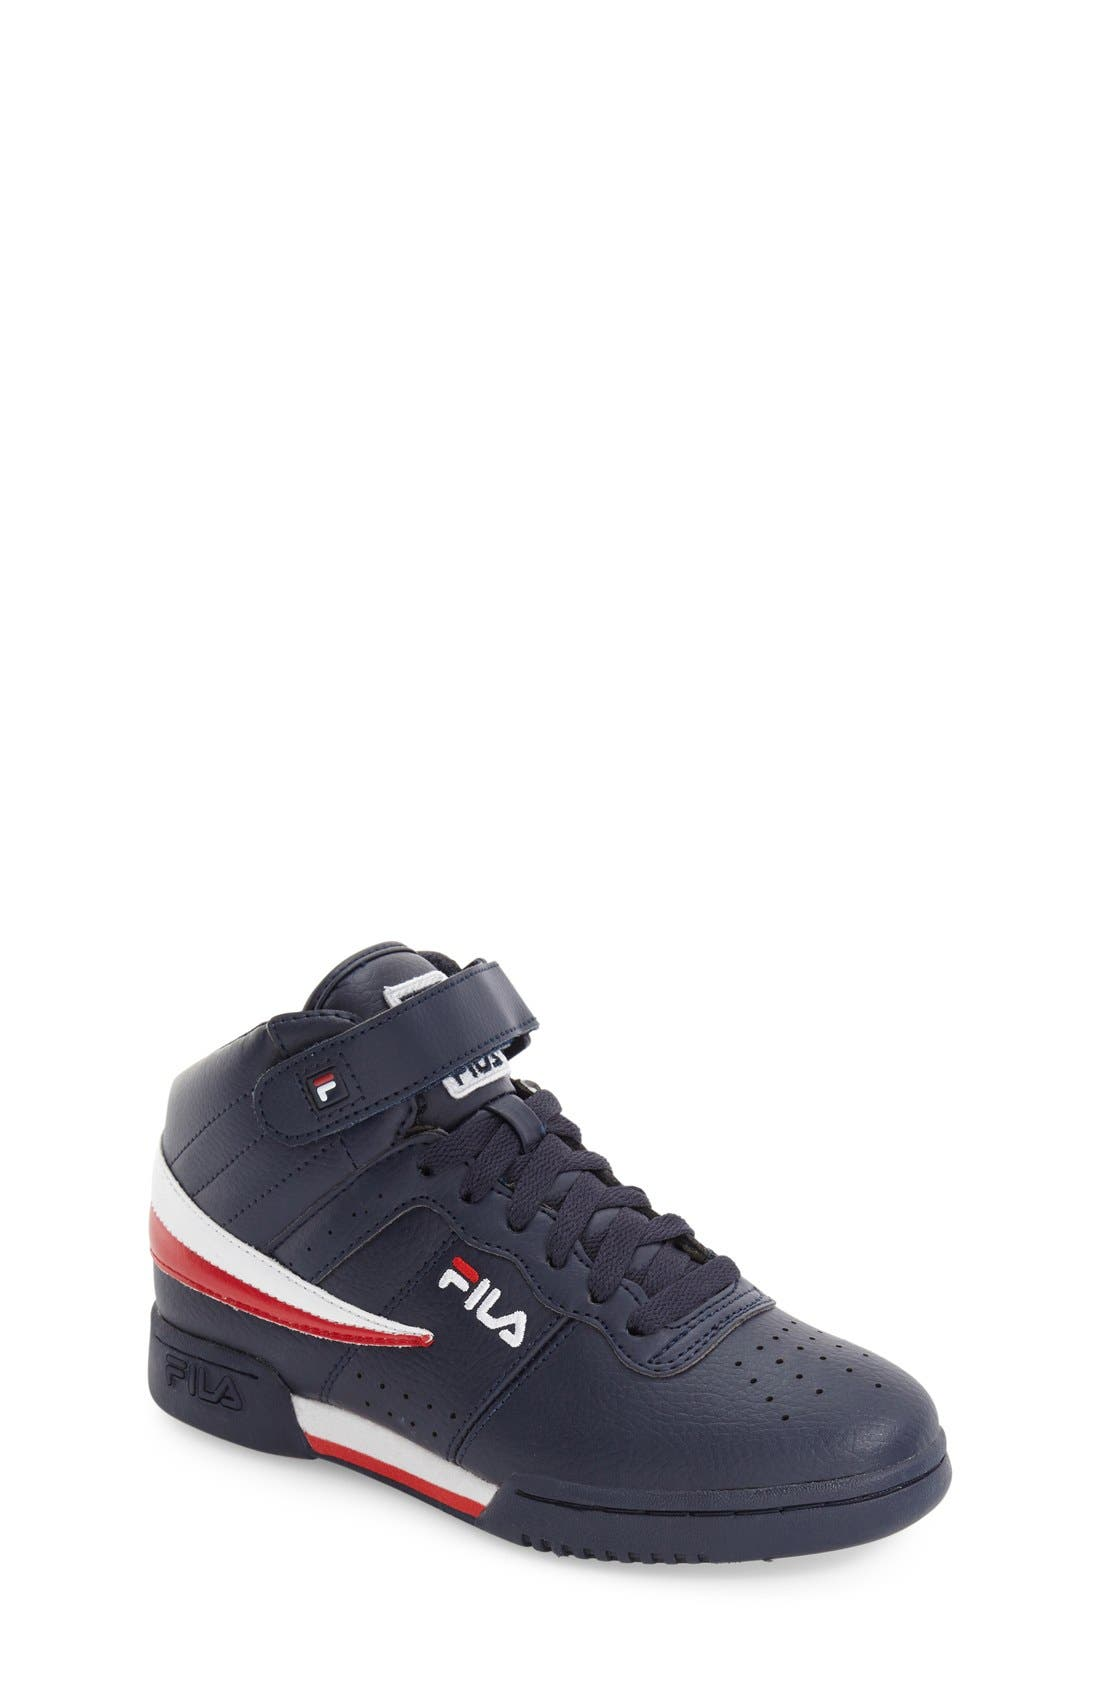 FILA F-13 High Top Sneaker (Big Kid)